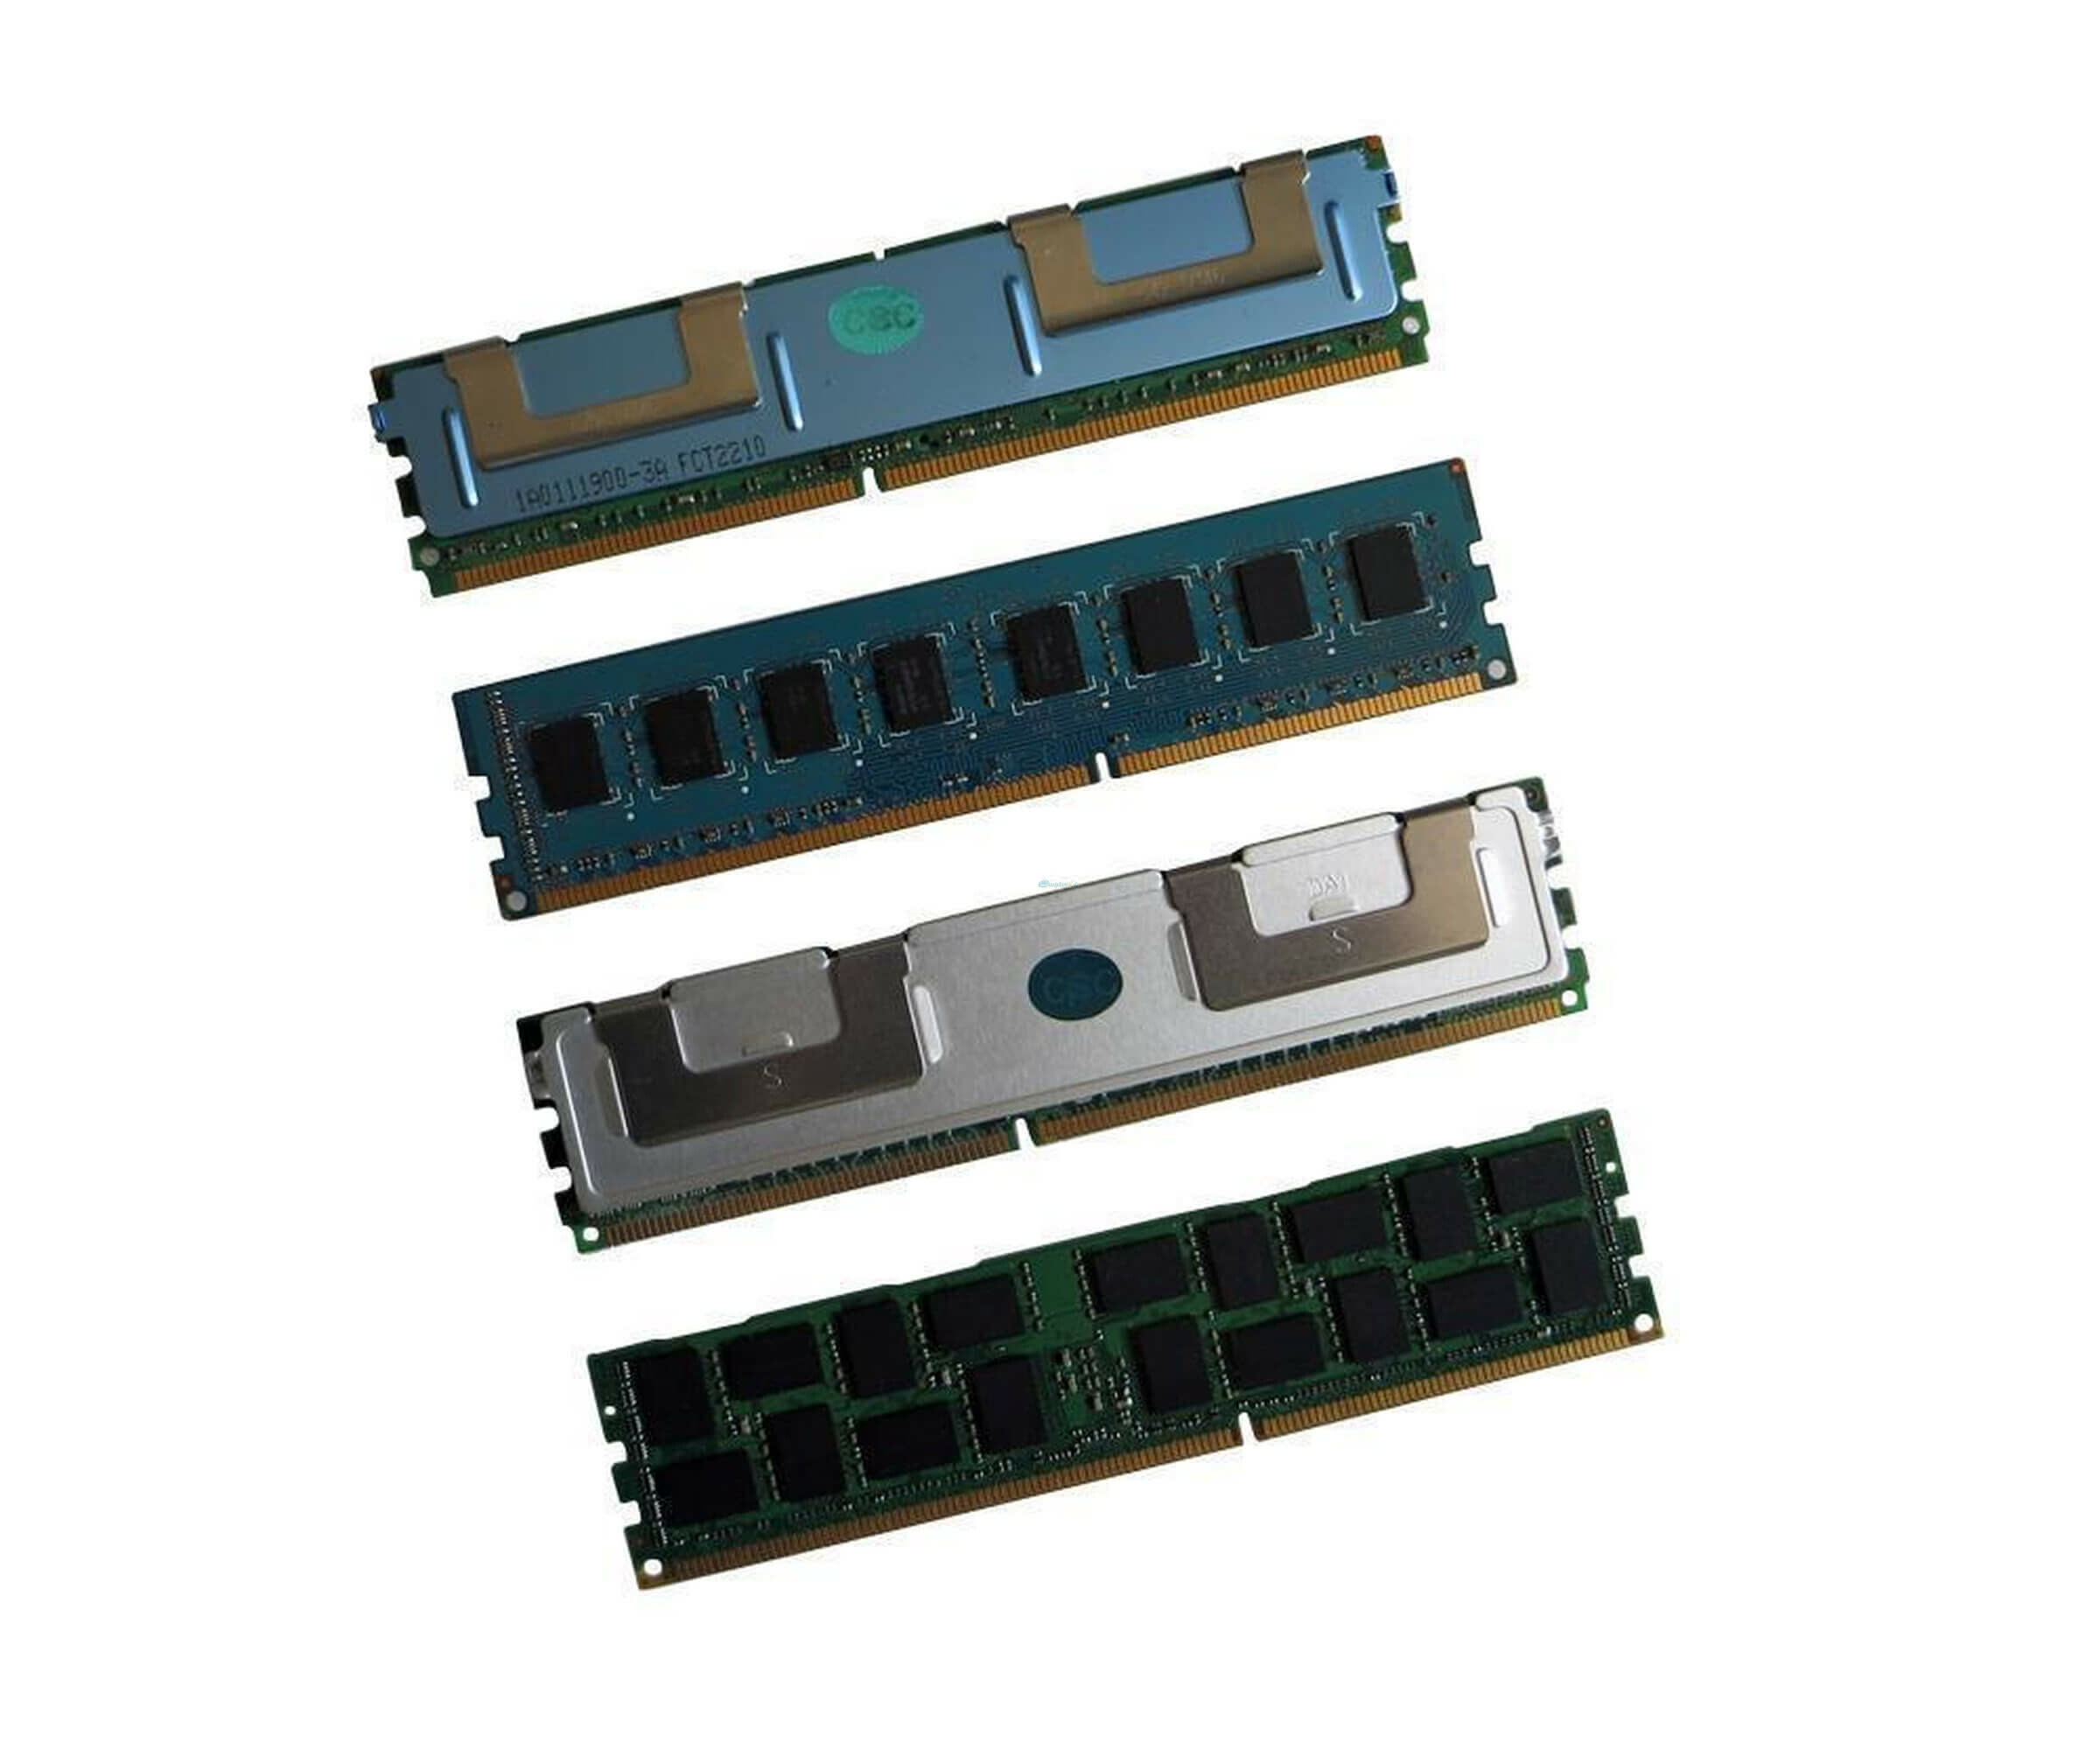 Sun 501-7386 Memory - 1 GB - PC-100 - DIMM 168-PIN - SDRAM